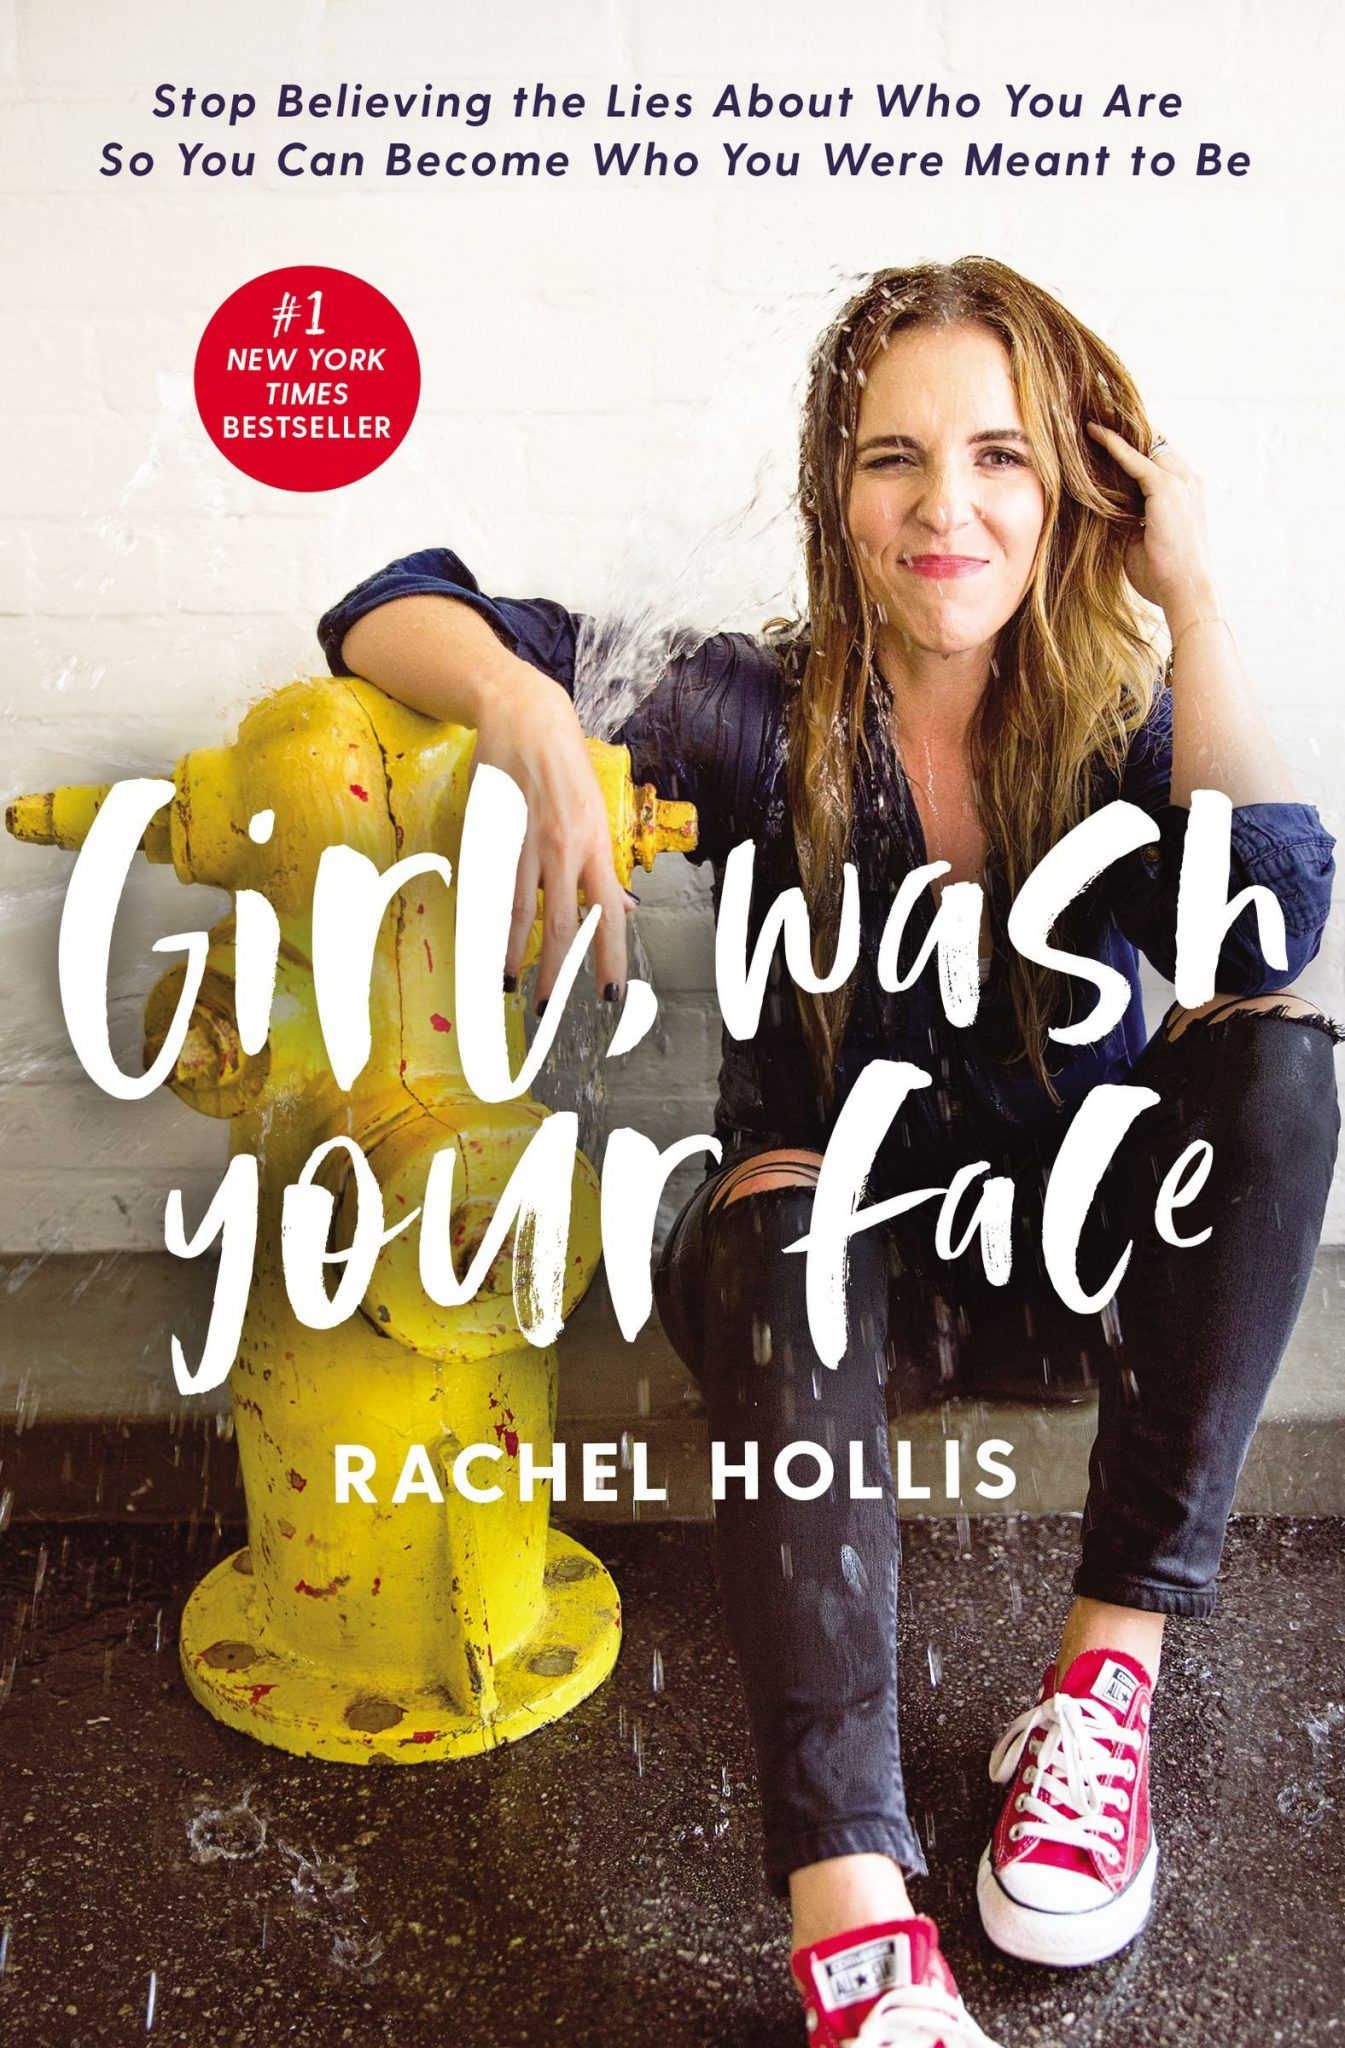 Girl, Wash Your Face? What Rachel Hollis Gets Right and Wrong